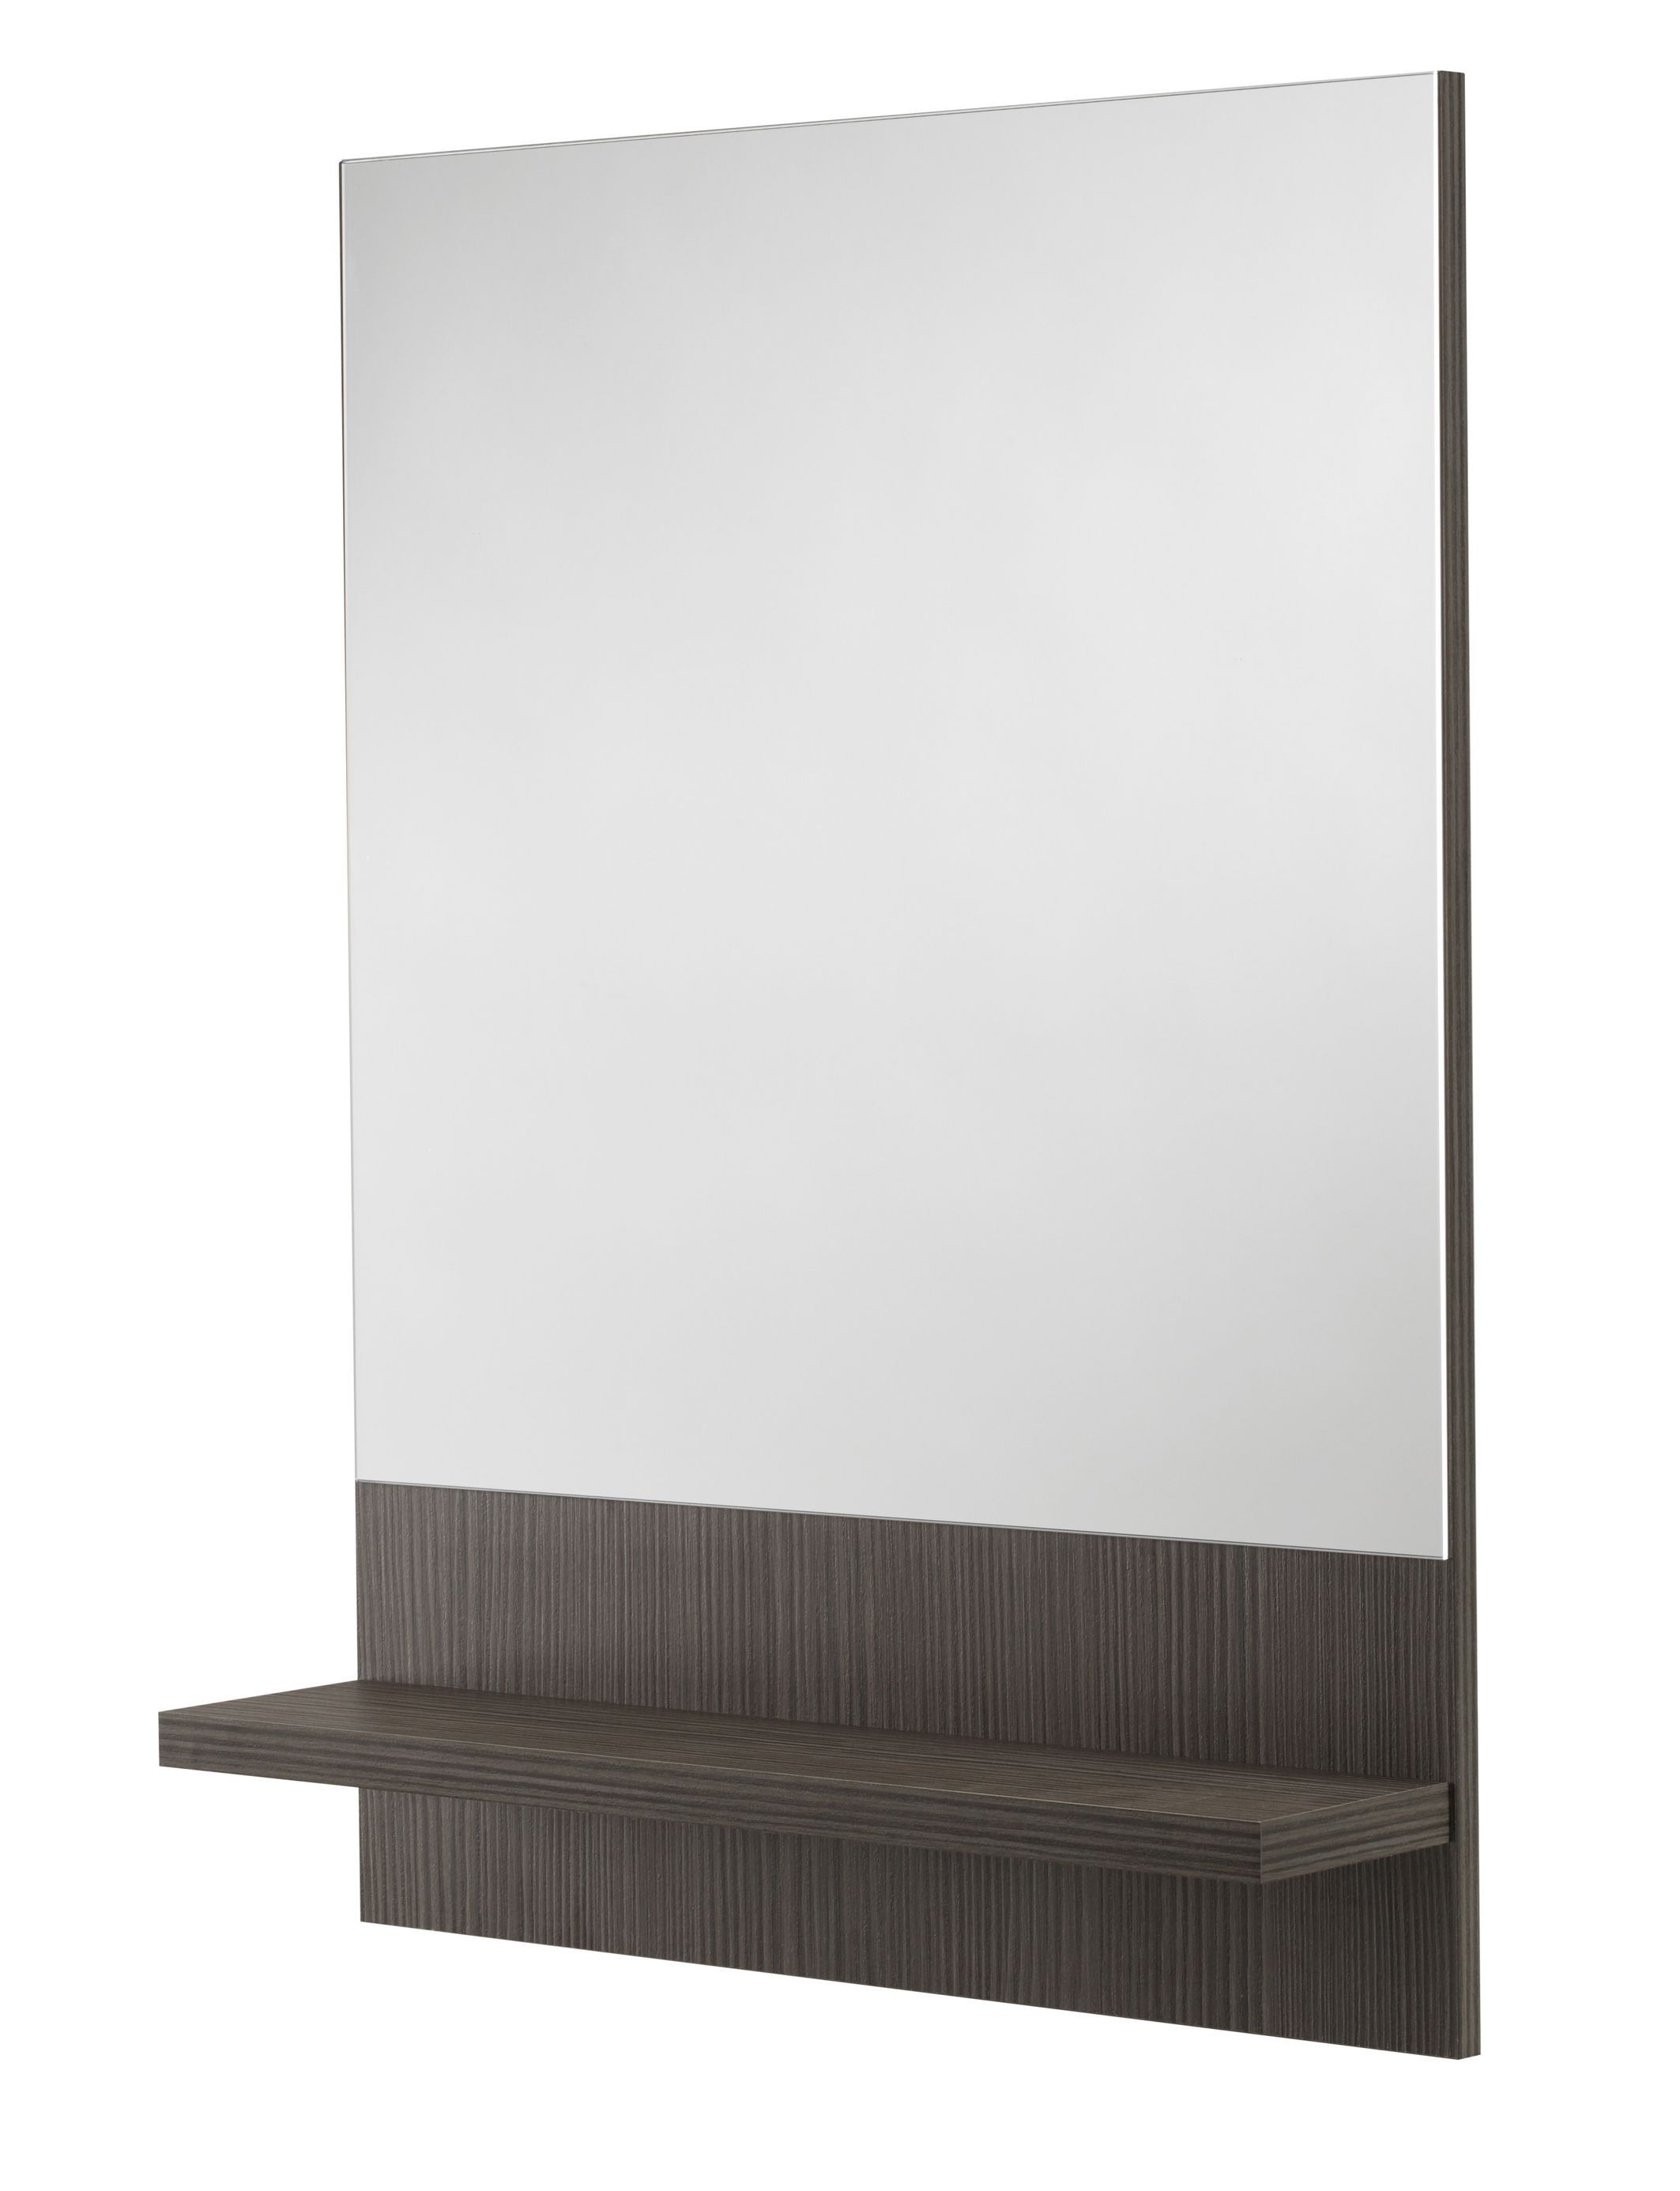 Bathroom Frameless Wall Mirror DIY